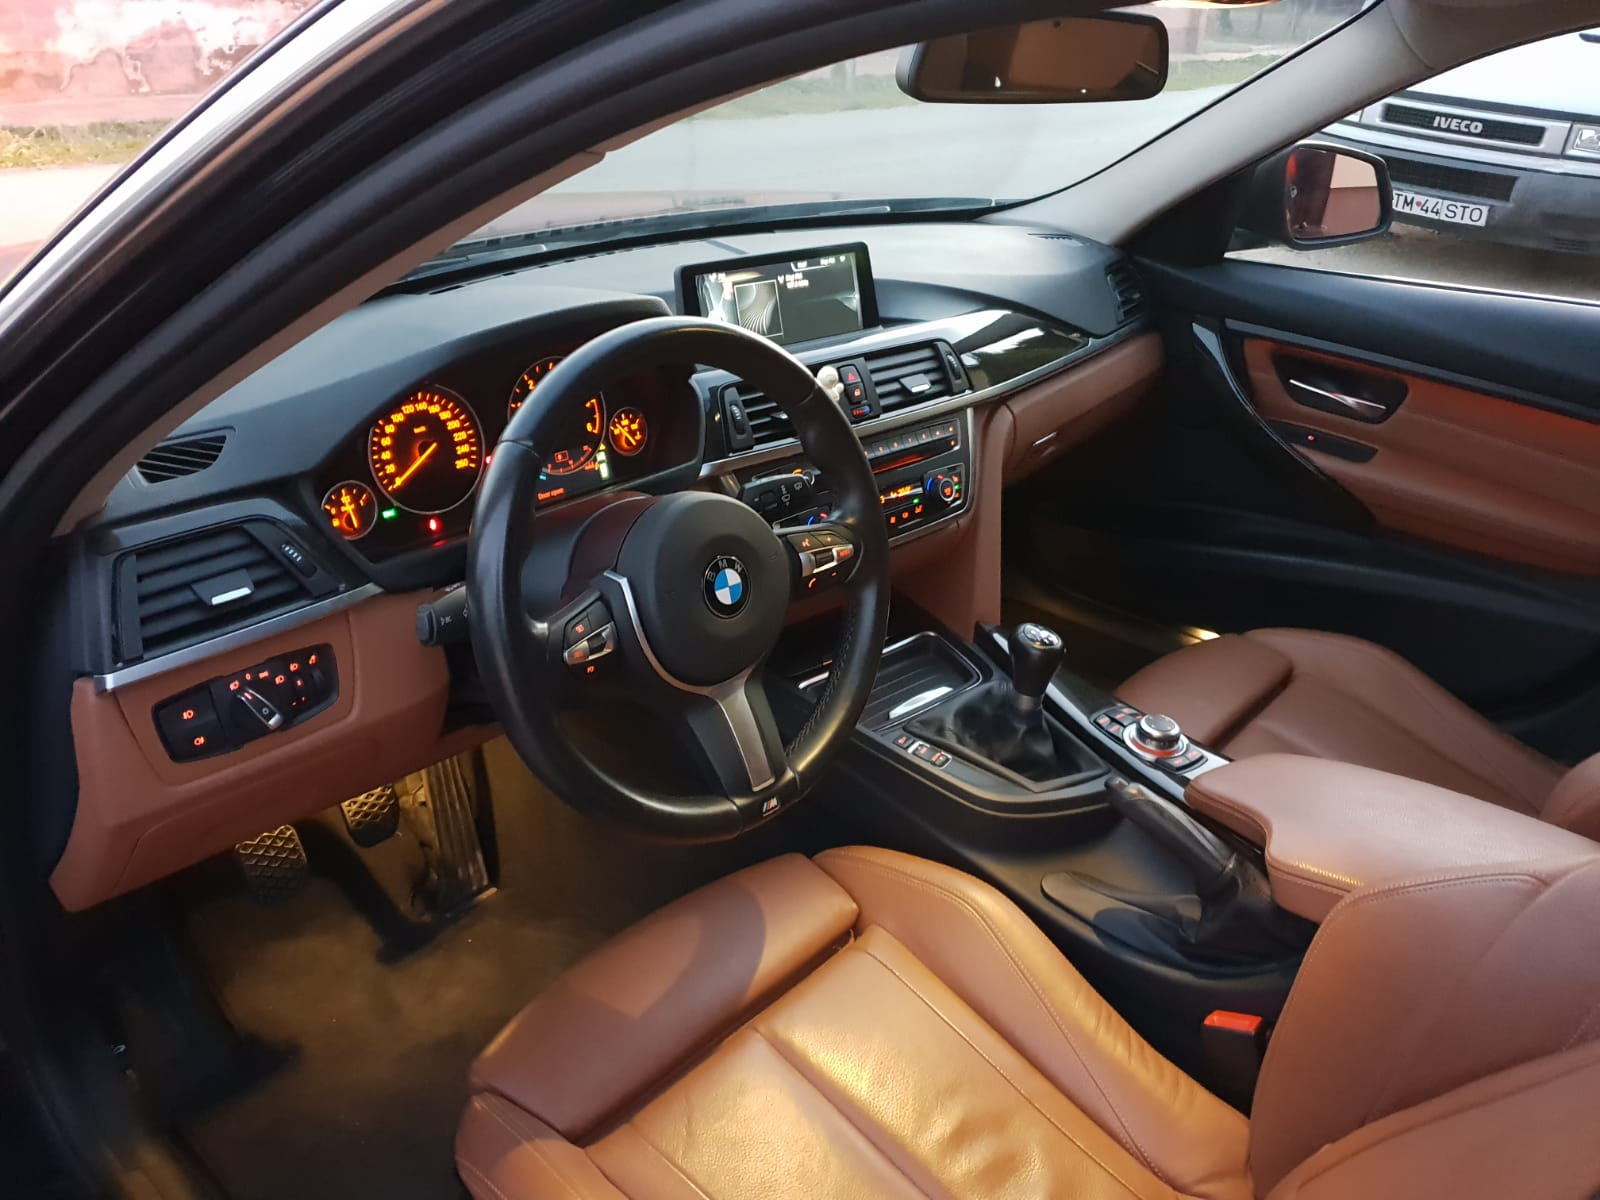 bmw_de_inchirirat (4)